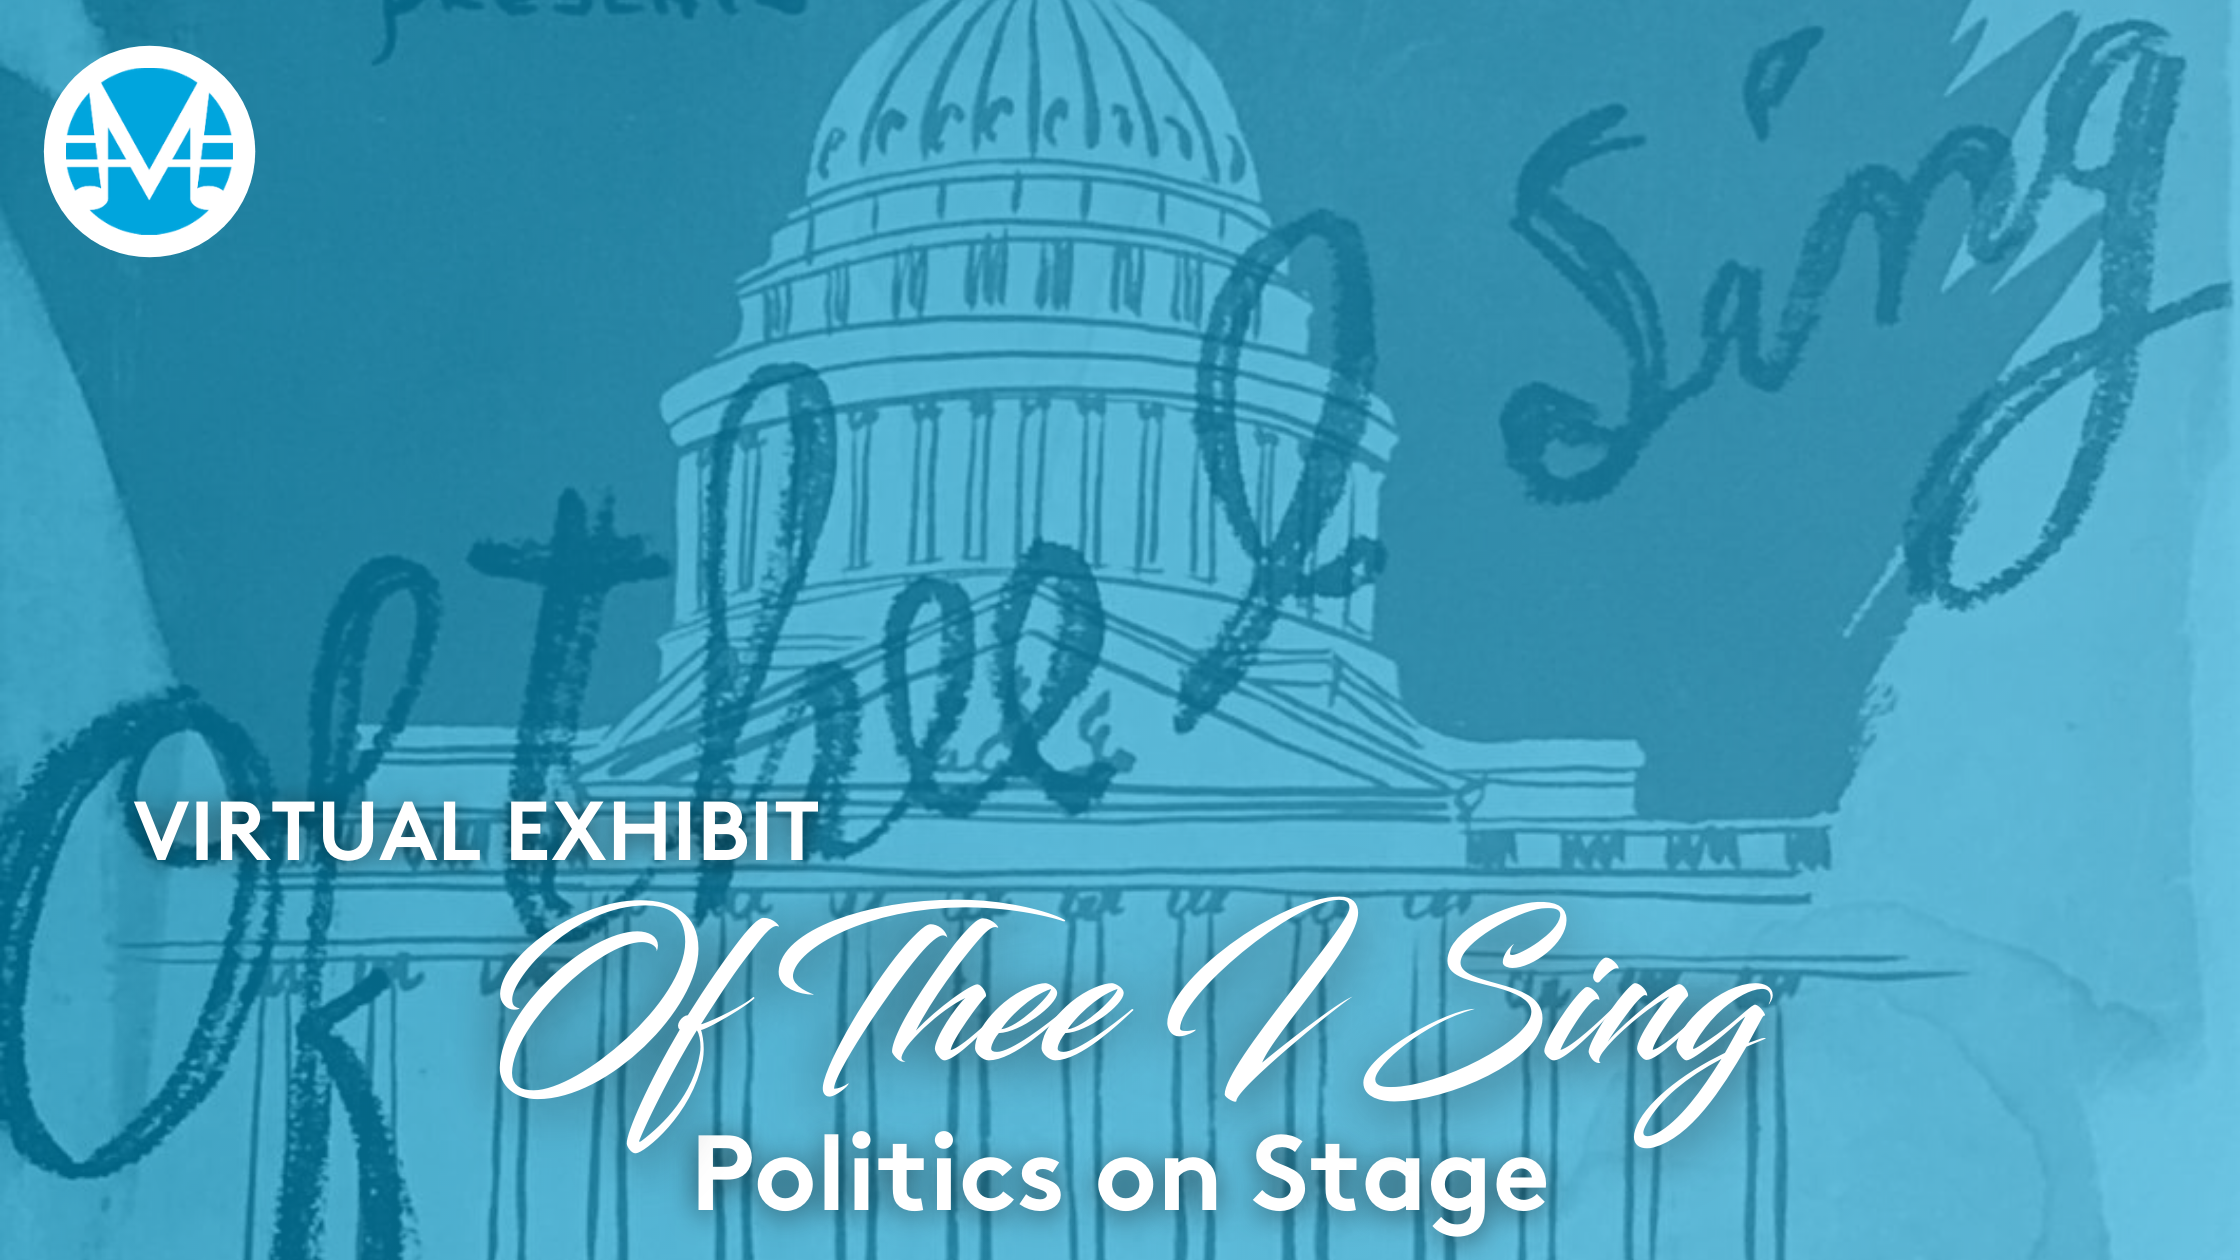 Virtual Exhibit: Of Thee I Sing. Politics on Stage.